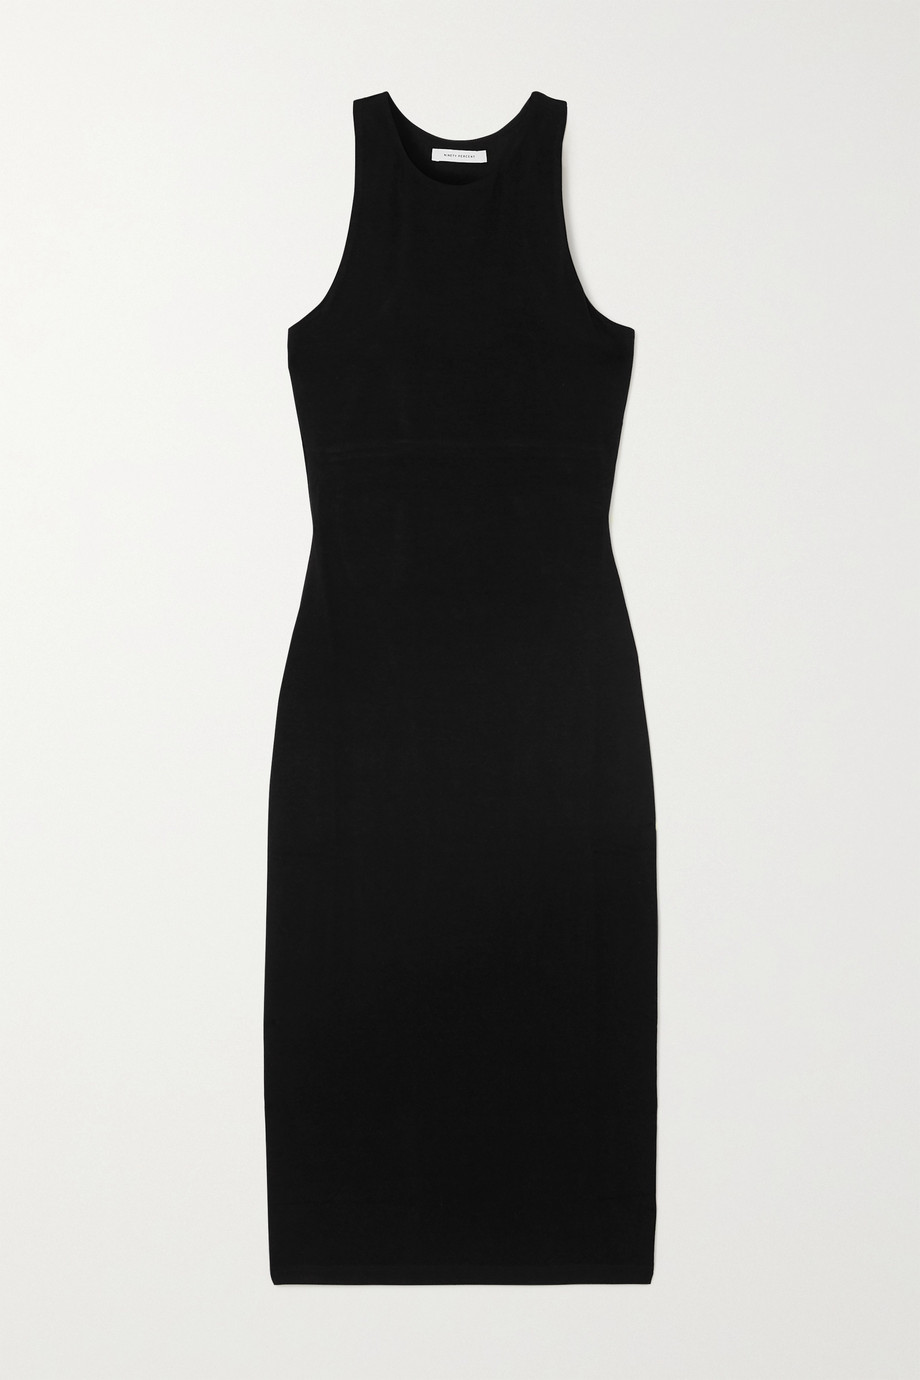 Ninety Percent + NET SUSTAIN stretch-Tencel dress